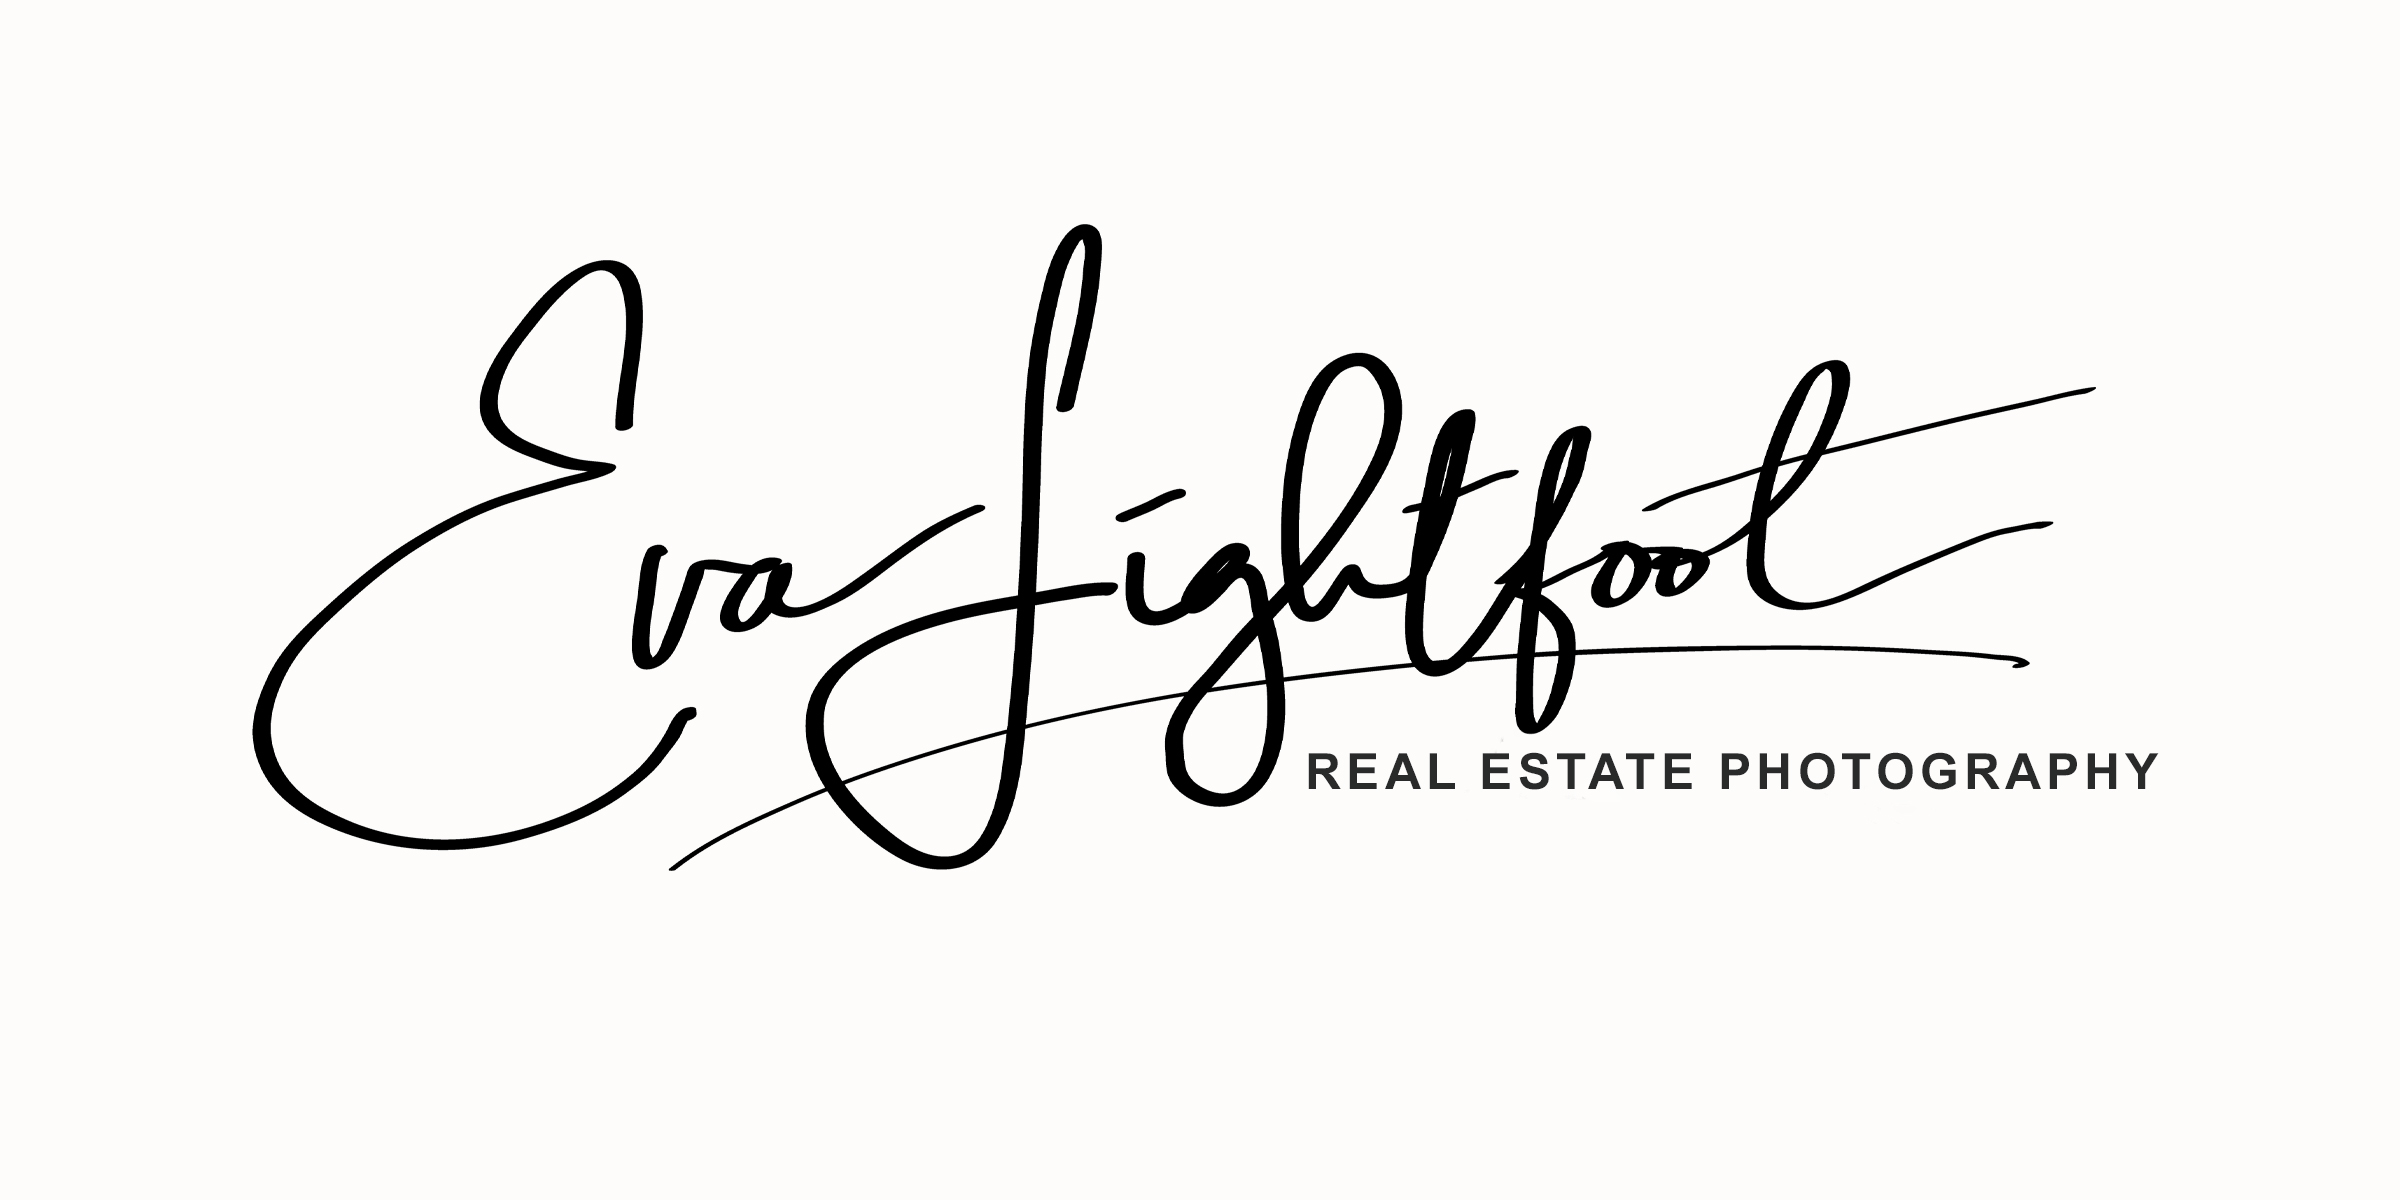 Eva Lightfoot Photos, LLC logo